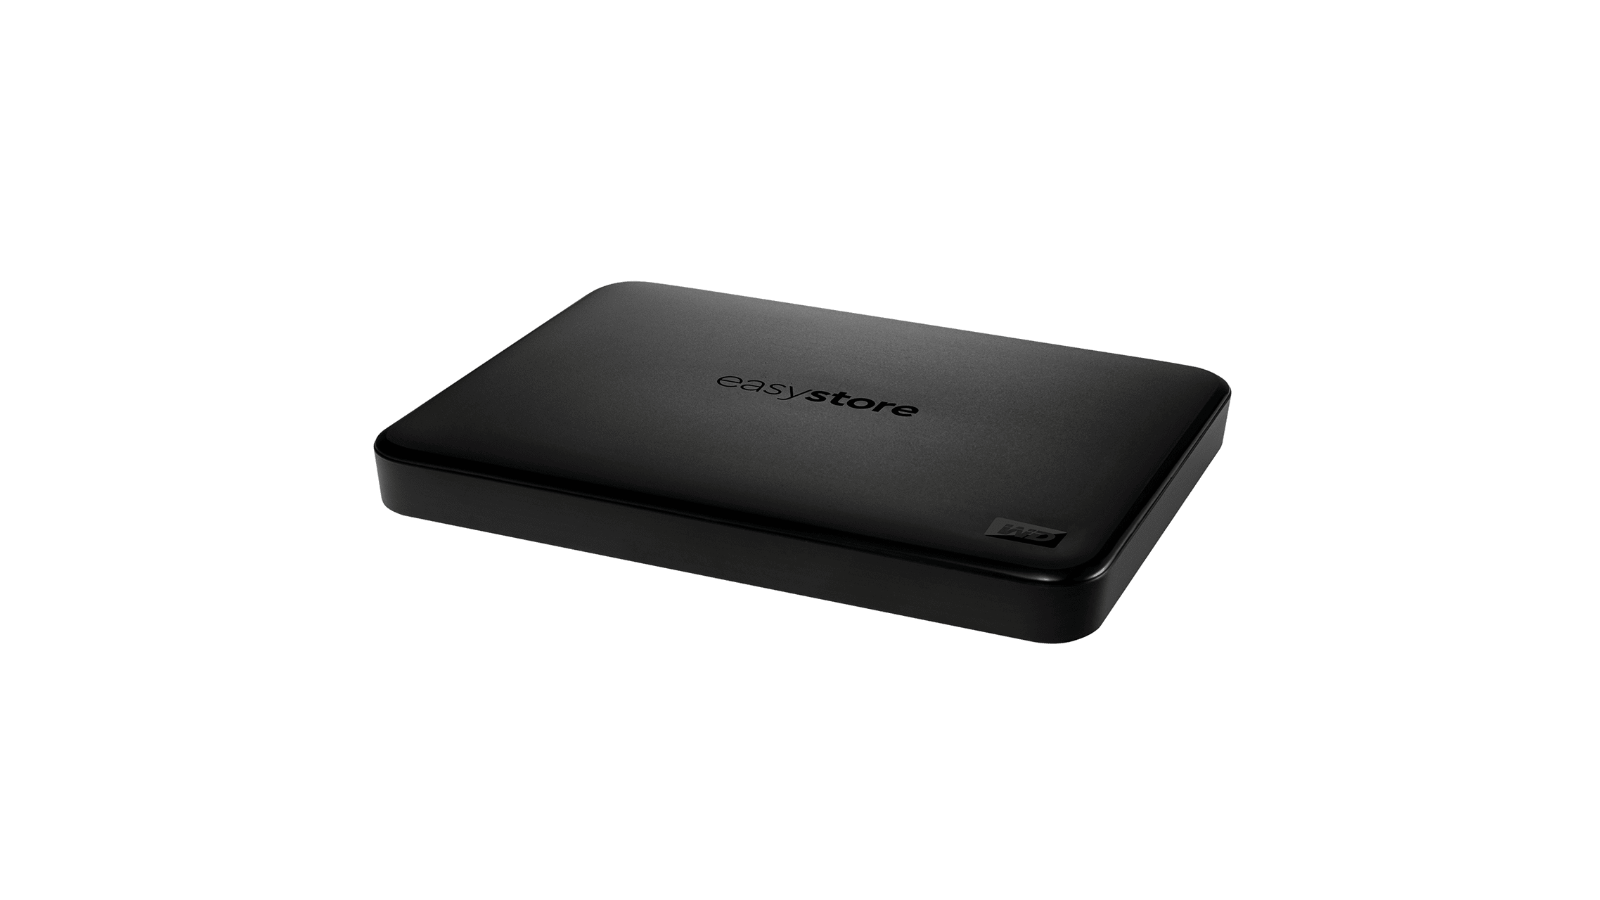 Deal Alert: Boost your Chromebook's storage with this 2TB Western Digital Drive($50 Off)